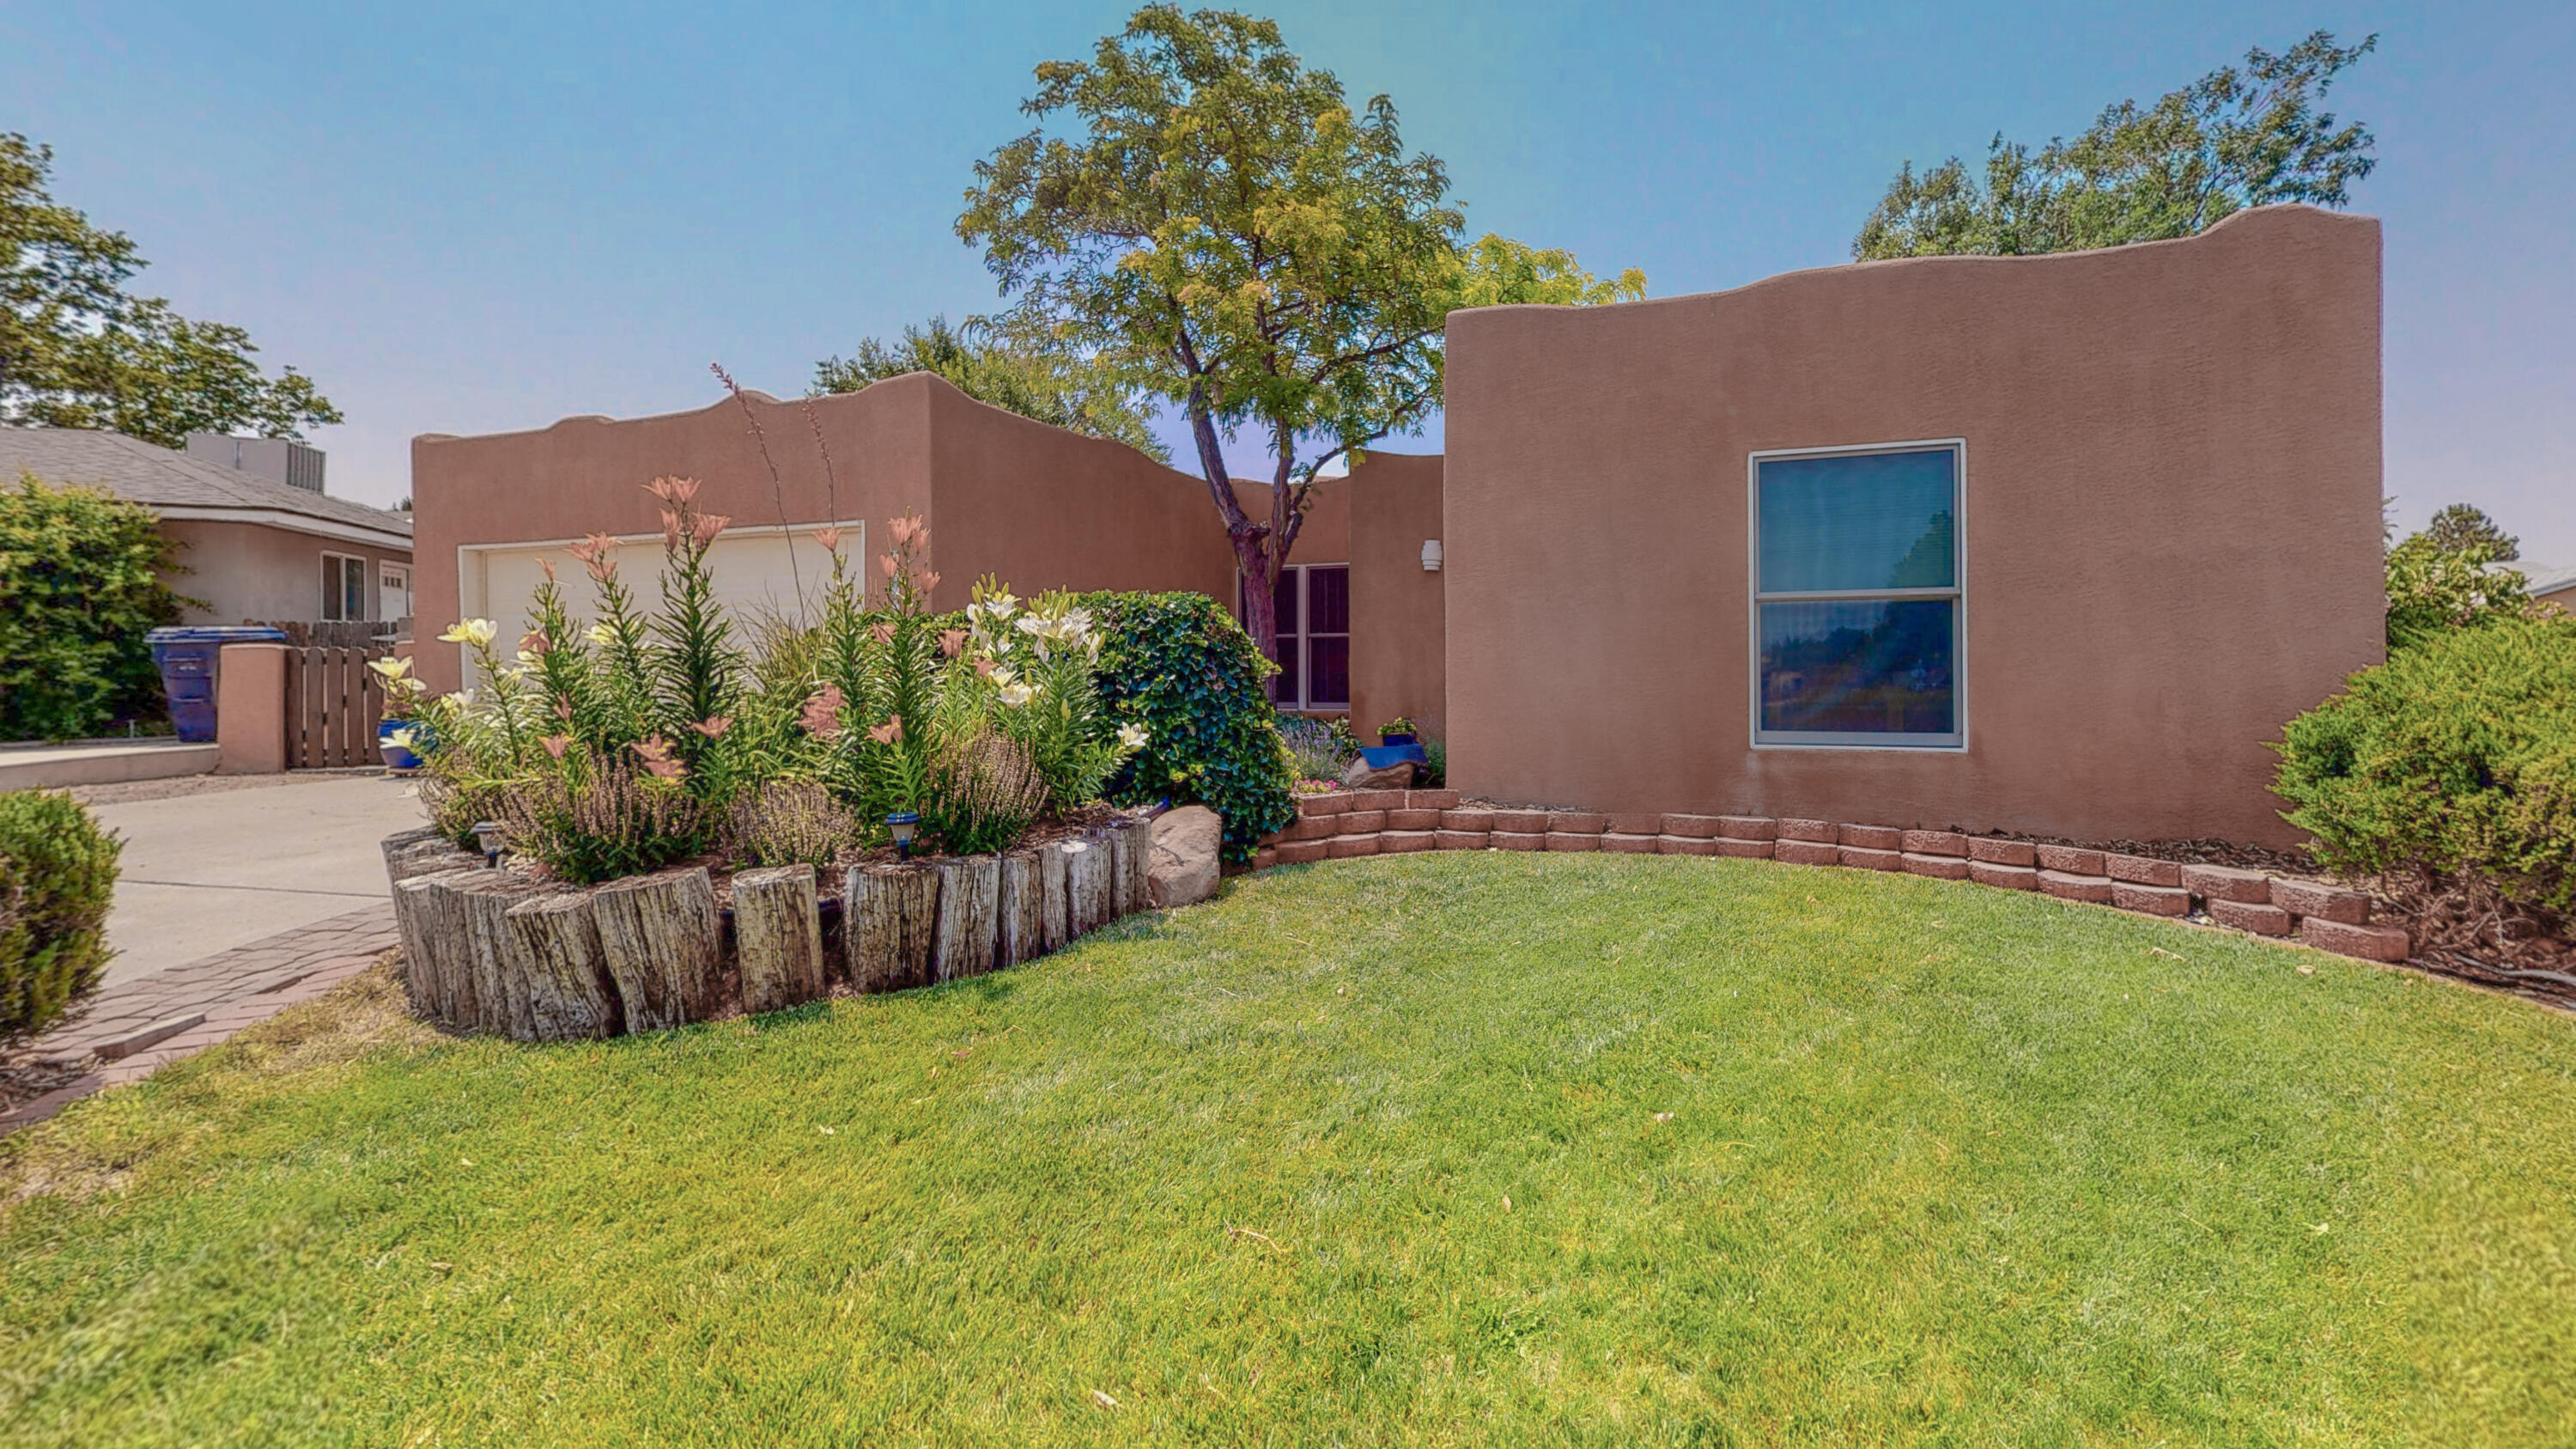 Gorgeous 3 br Brentwood Hills Beauty, all dressed up and ready to go! Formal Dining room, high Ceilings, Family room with cozy fireplace.   You'll fall in love with the updated decor featuring fresh paint, recent bathroom touches  and new Luxury Vinyl flooring in the Kitchen.  Some of the many recent updates include New TPO roof, recent Stucco, Anderson Windows and Security Doors, new garage door and hard-wired smoke detector.  The property features a park-like backyard with lush lawn and gardens. Located on a serene cul-de-sac this casa is also just steps away from the Lynnwood park, complete with Play Ground, Basket Ball Courts and Tennis Courts.   Close to hiking/biking and nature trails.  Walking distance to Brewery and restaruants...  Hurry you don't want to miss out on this one!